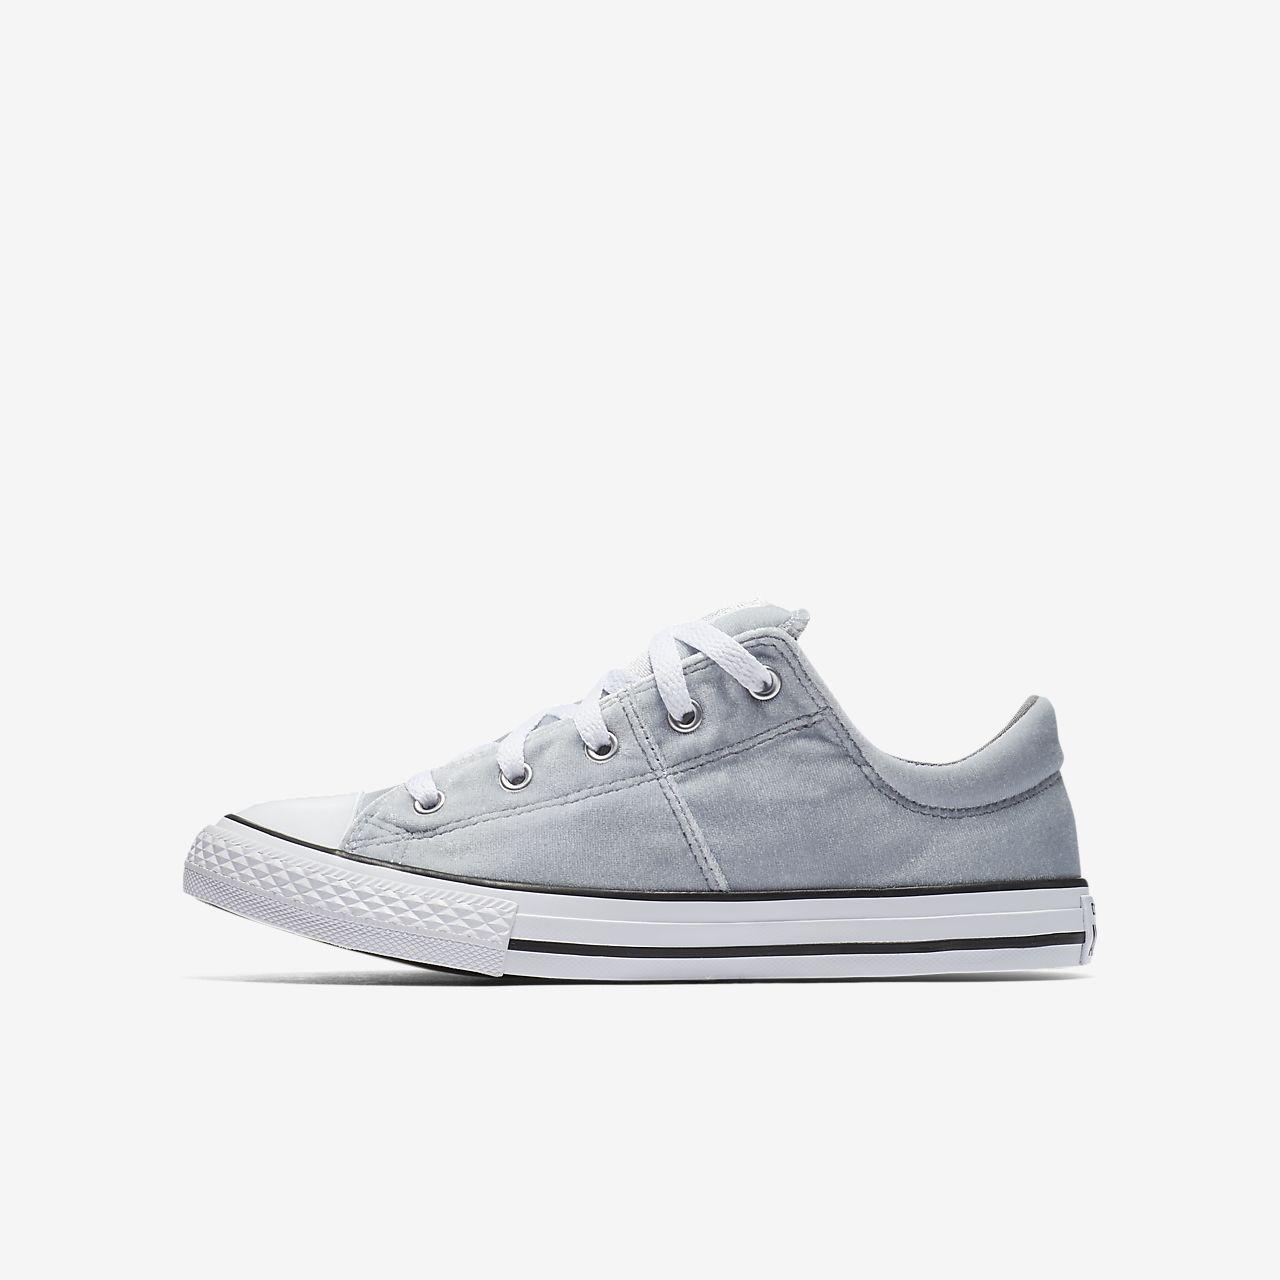 Converse Chuck Taylor All Star Madison Low Top Womens Shoe